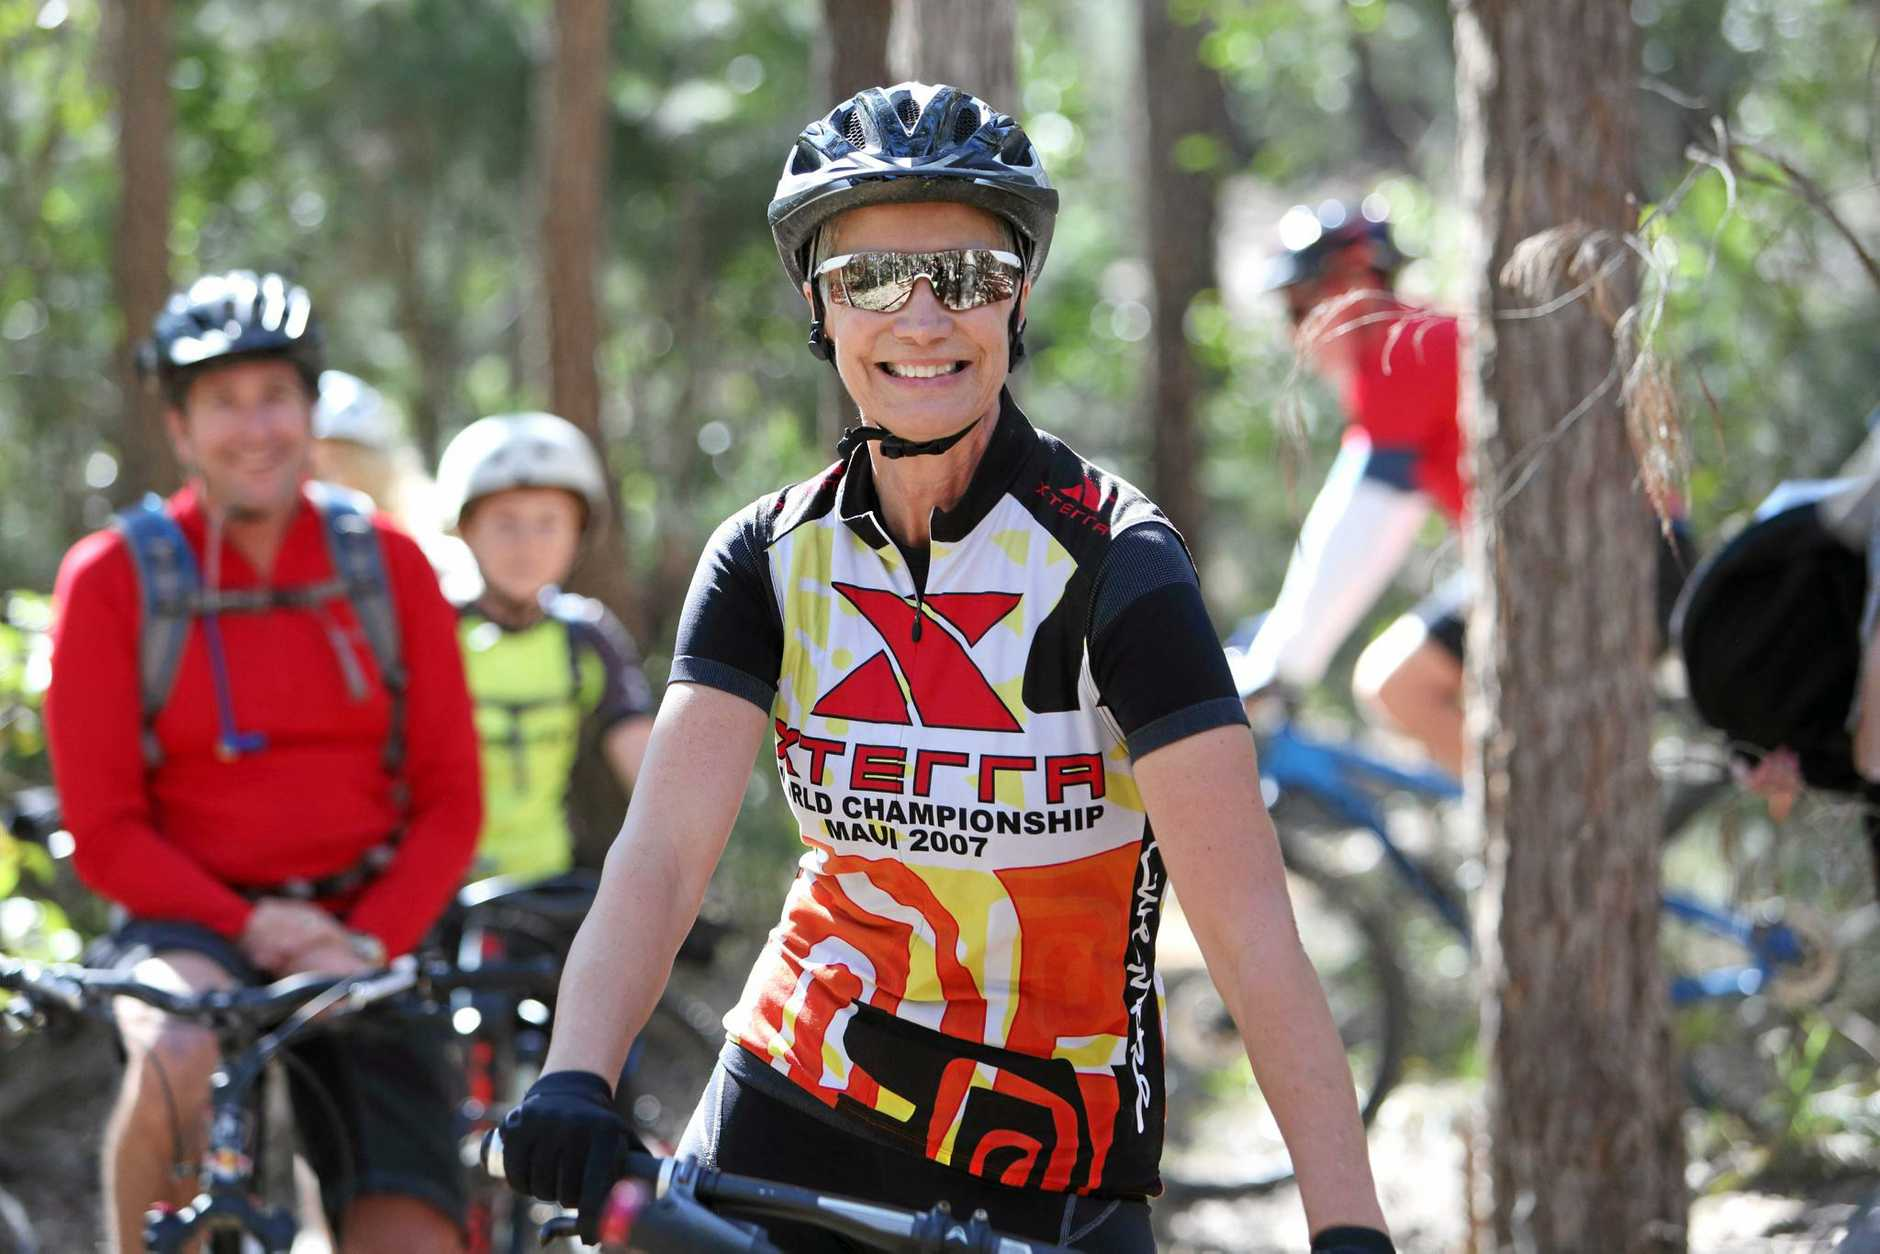 The plan to build a trail from Nambour to Coolum has met with support from recreational groups.